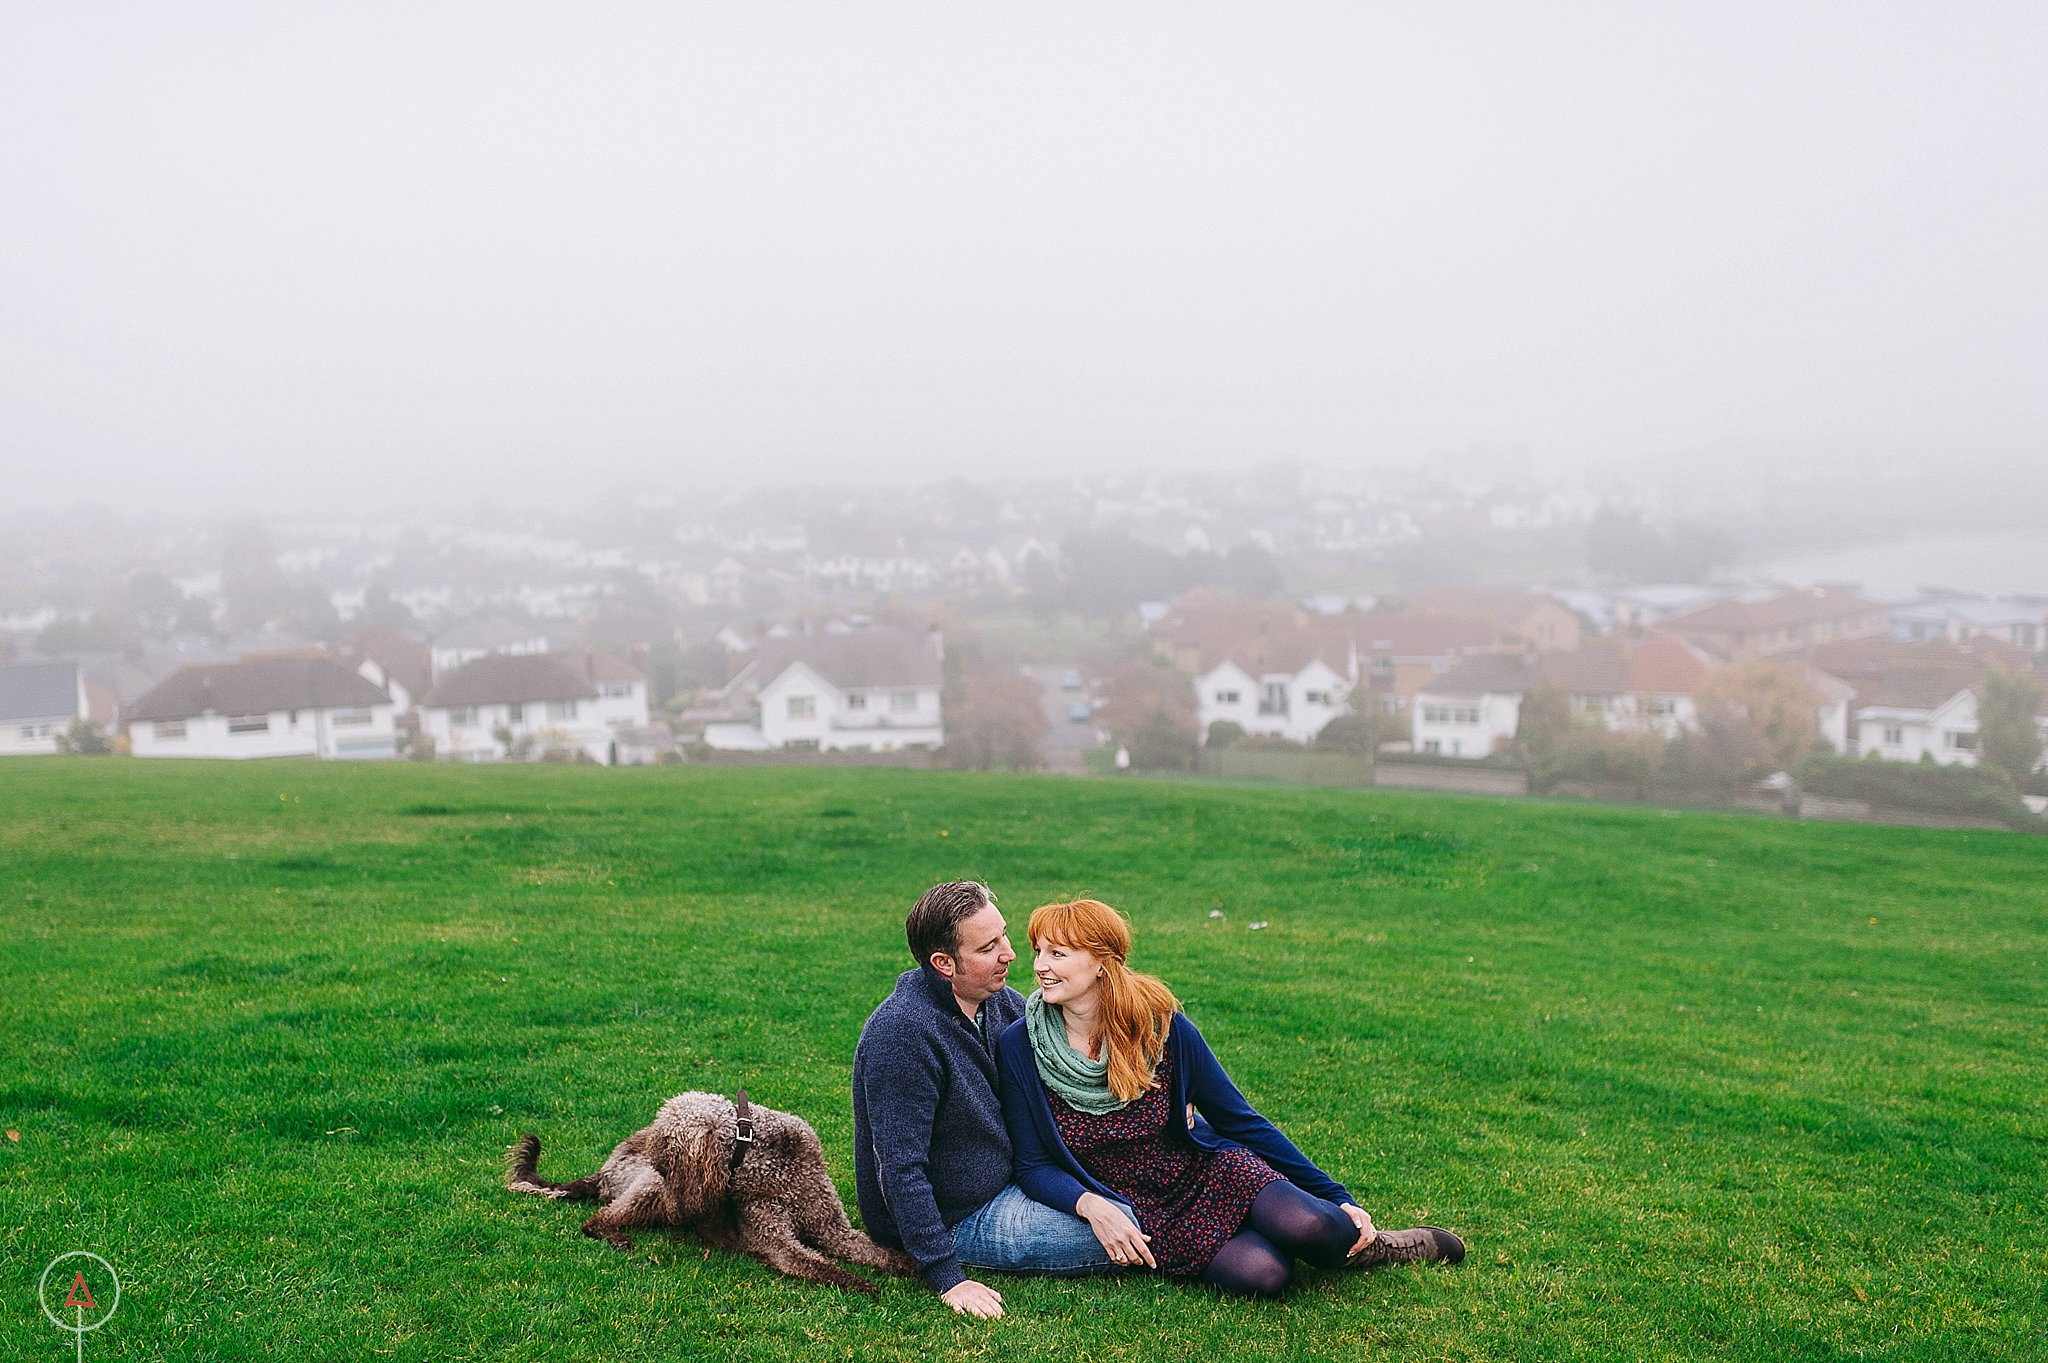 South-Wales-Pre-Wedding-Photography-Aga-Tomaszek-00031